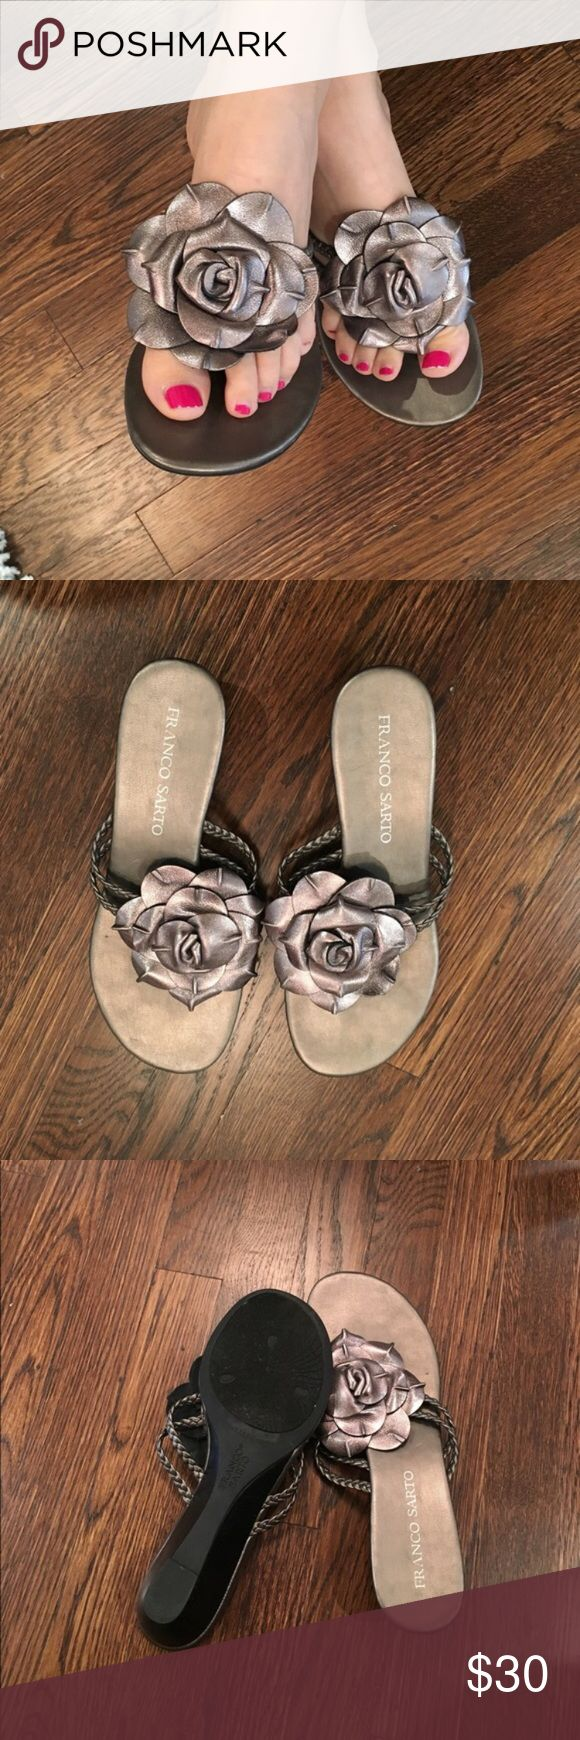 Franco Sarto mini wedges Adorable pewter kitten wedges. Barely worn. Size 7 M. Franco Sarto Shoes Sandals